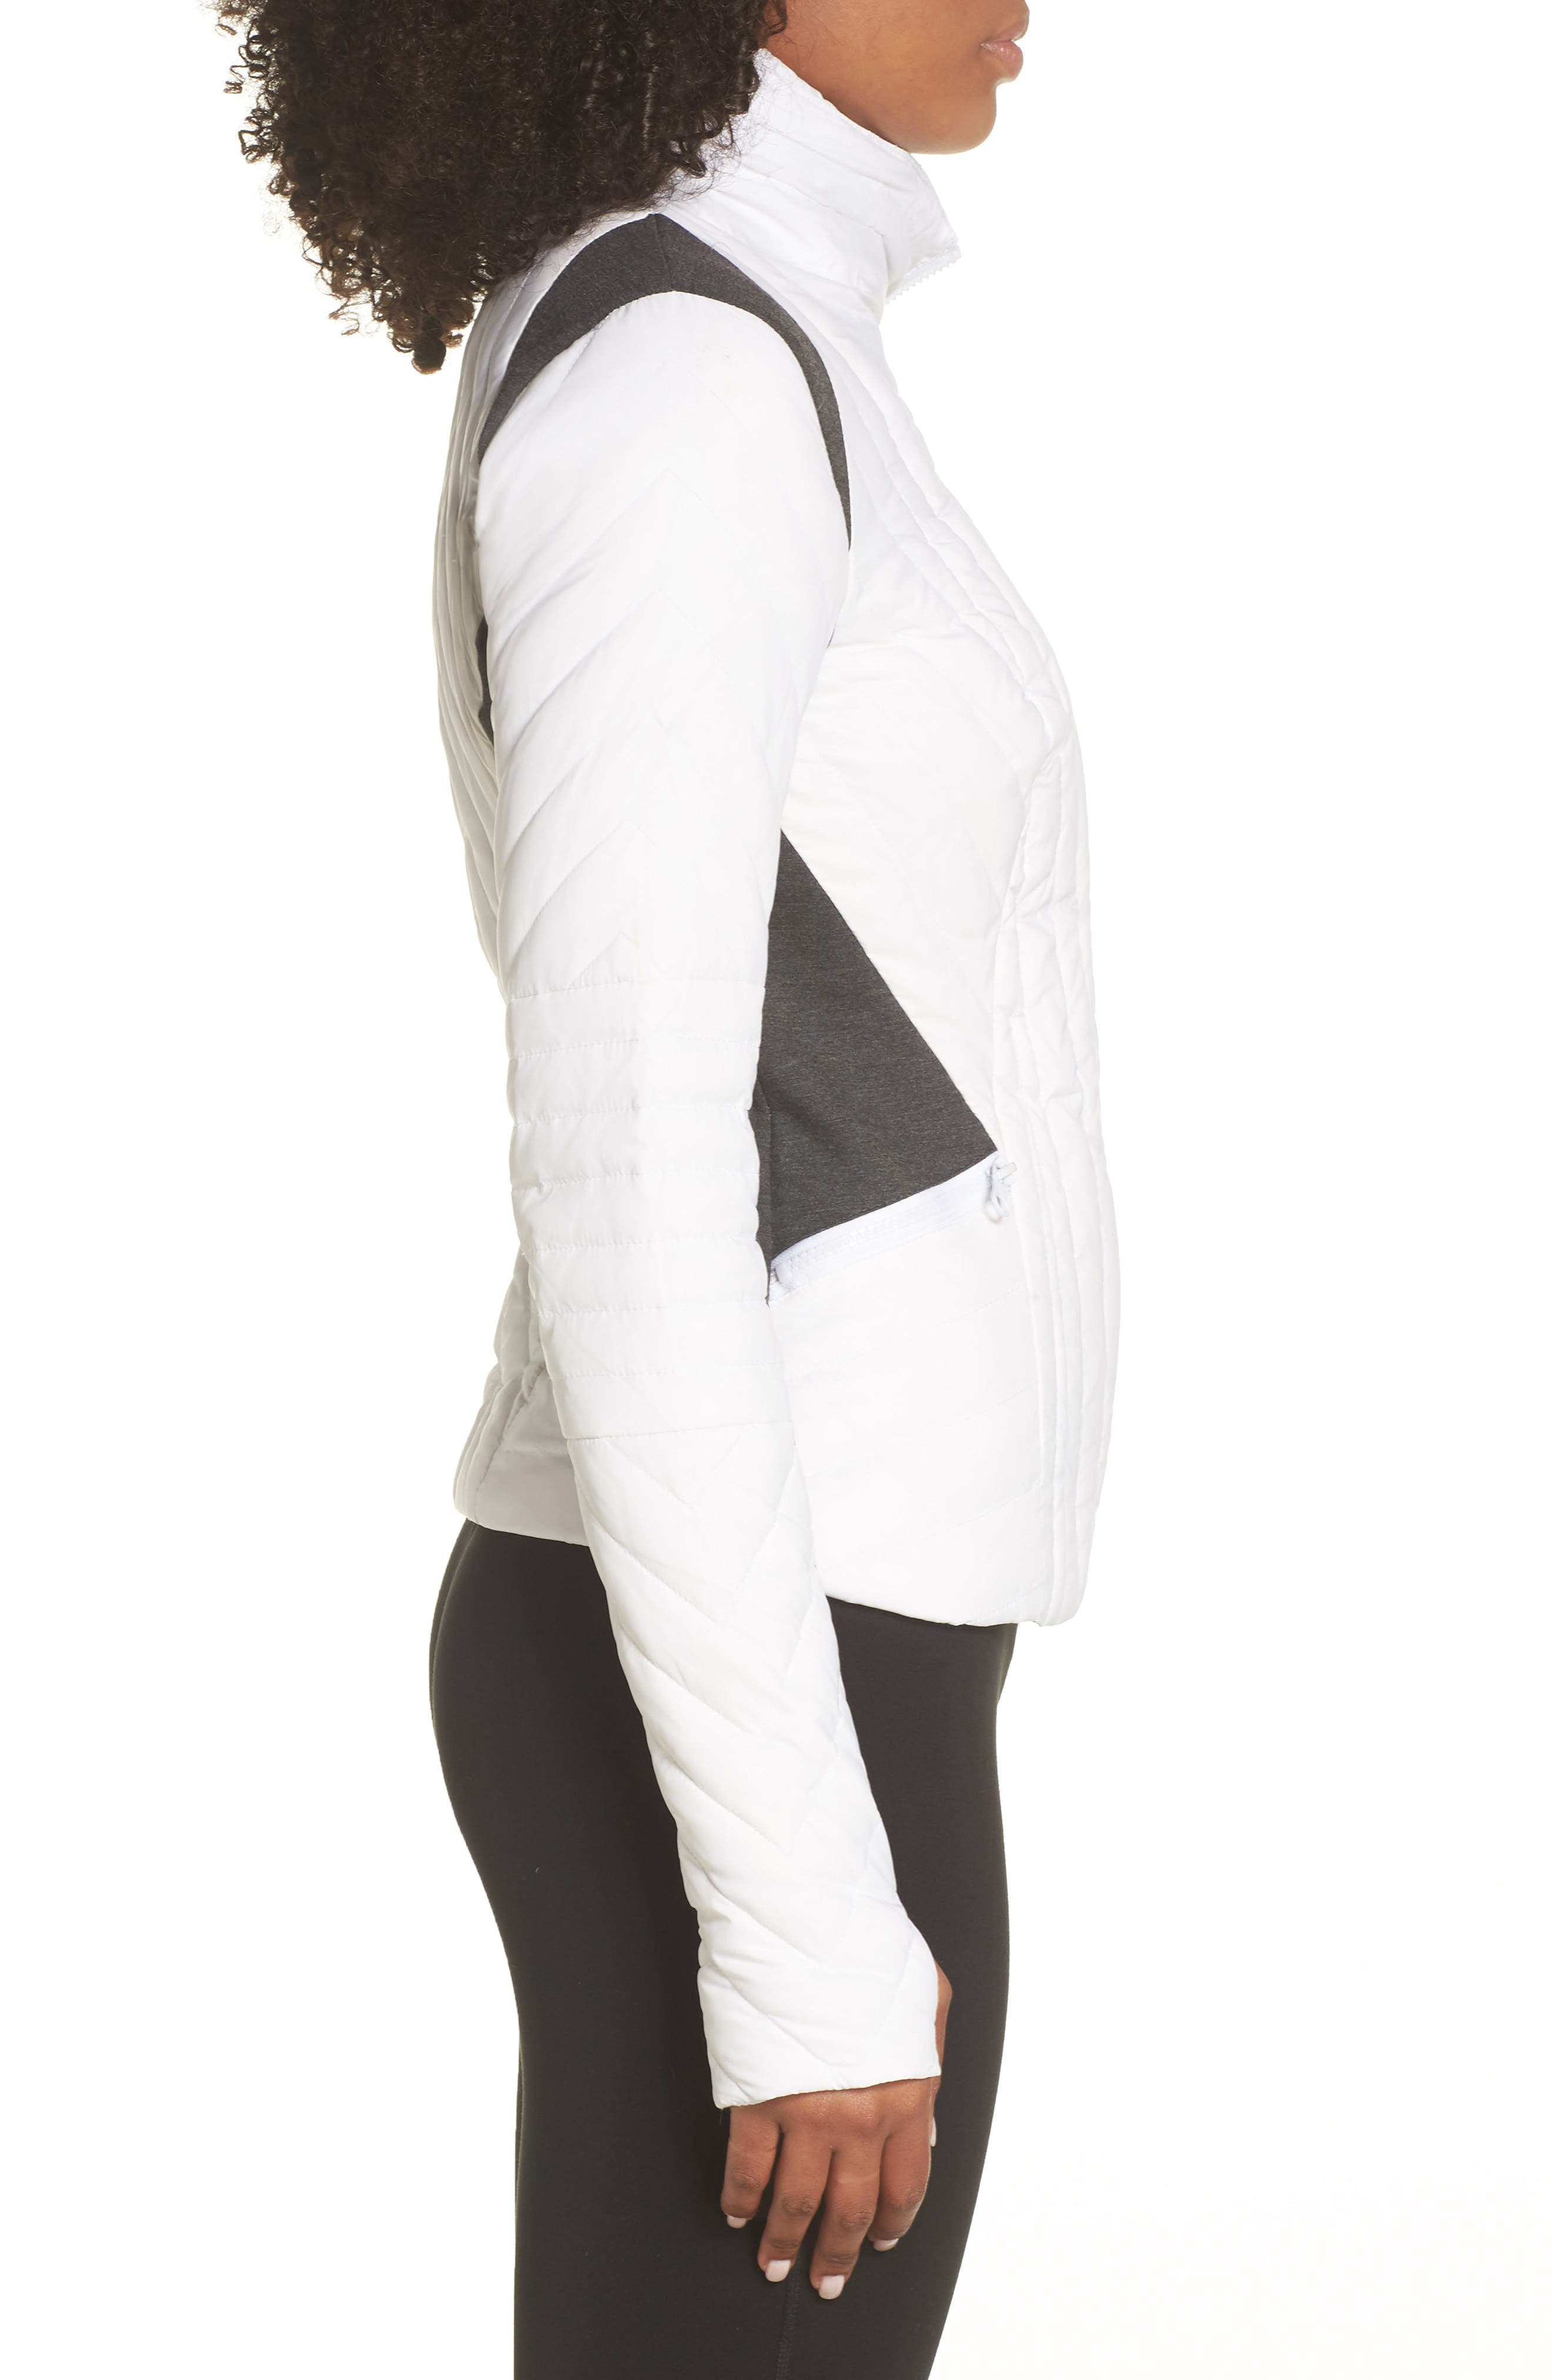 BLANC NOIR,                             Motion Panel Down Puffer Jacket,                             Alternate thumbnail 3, color,                             WHITE/ HEATHER GREY